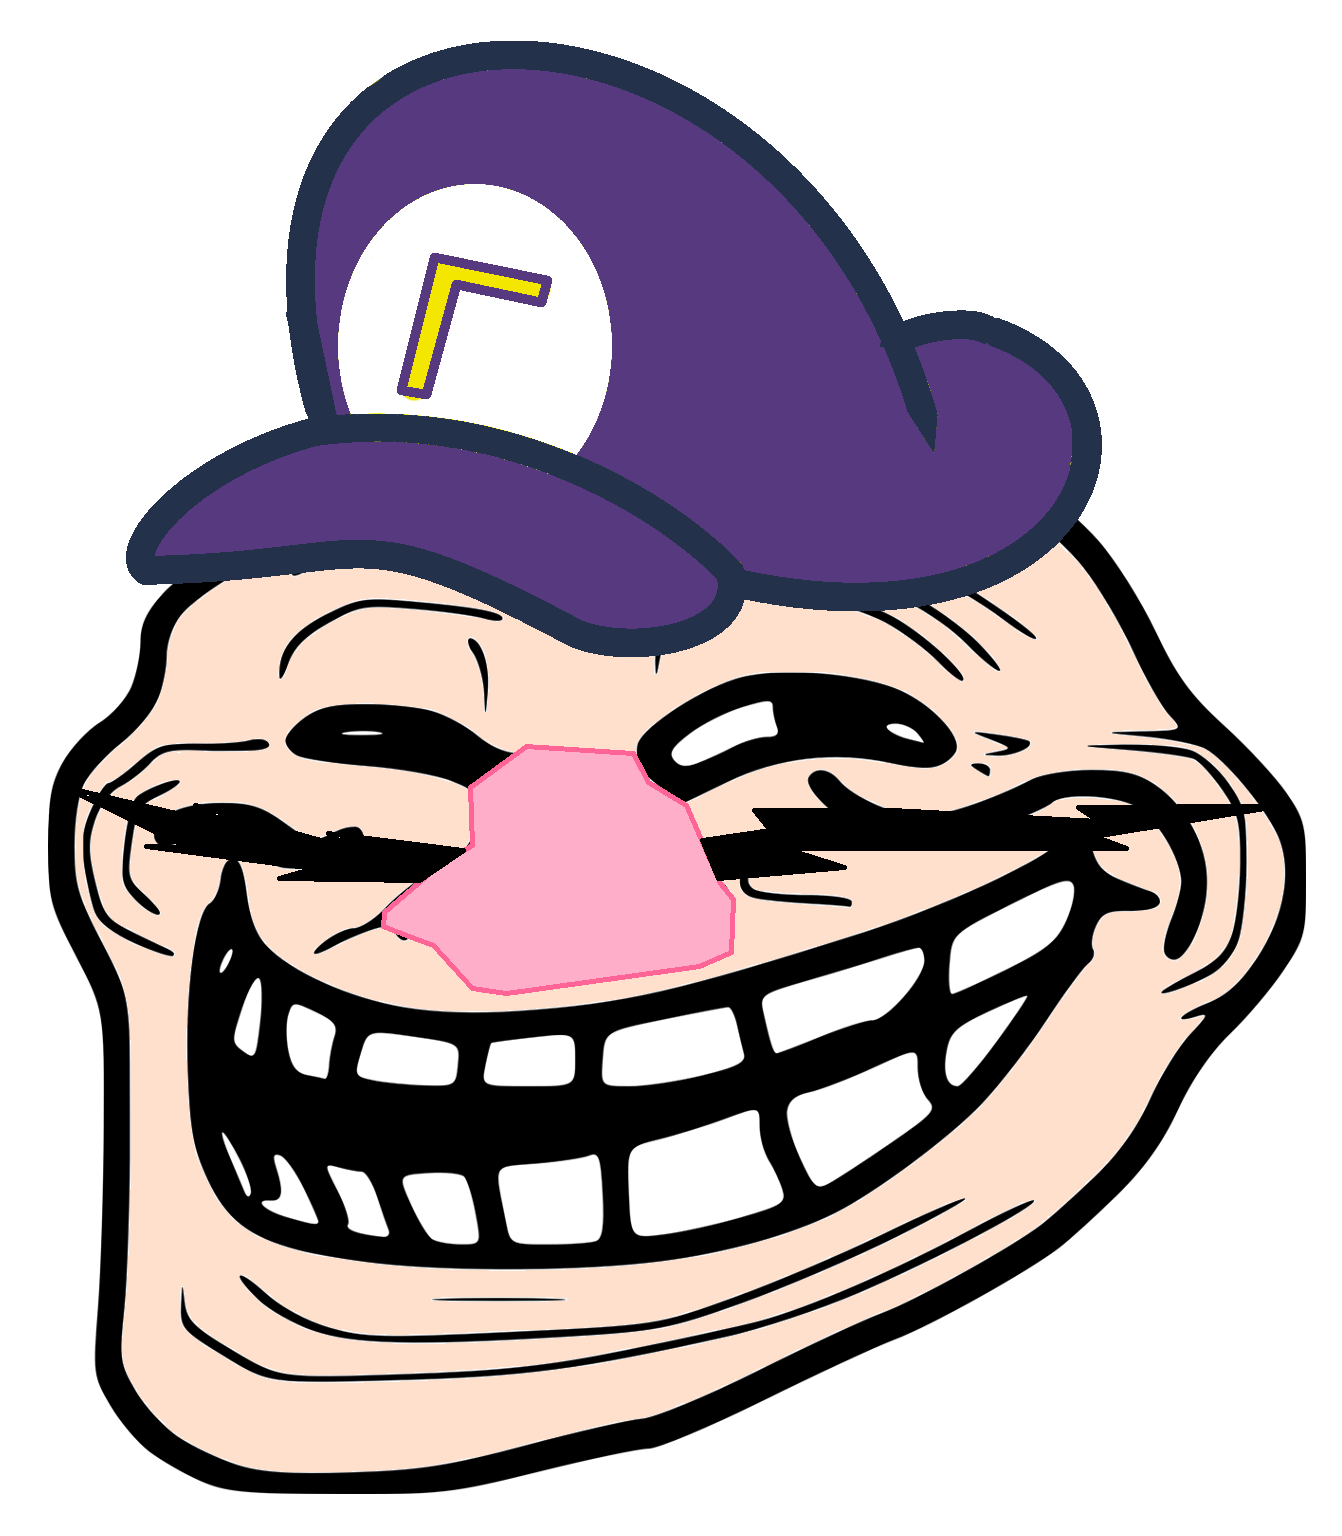 Image trollface pngg club penguin wiki fandom powered by trollface pngg voltagebd Images